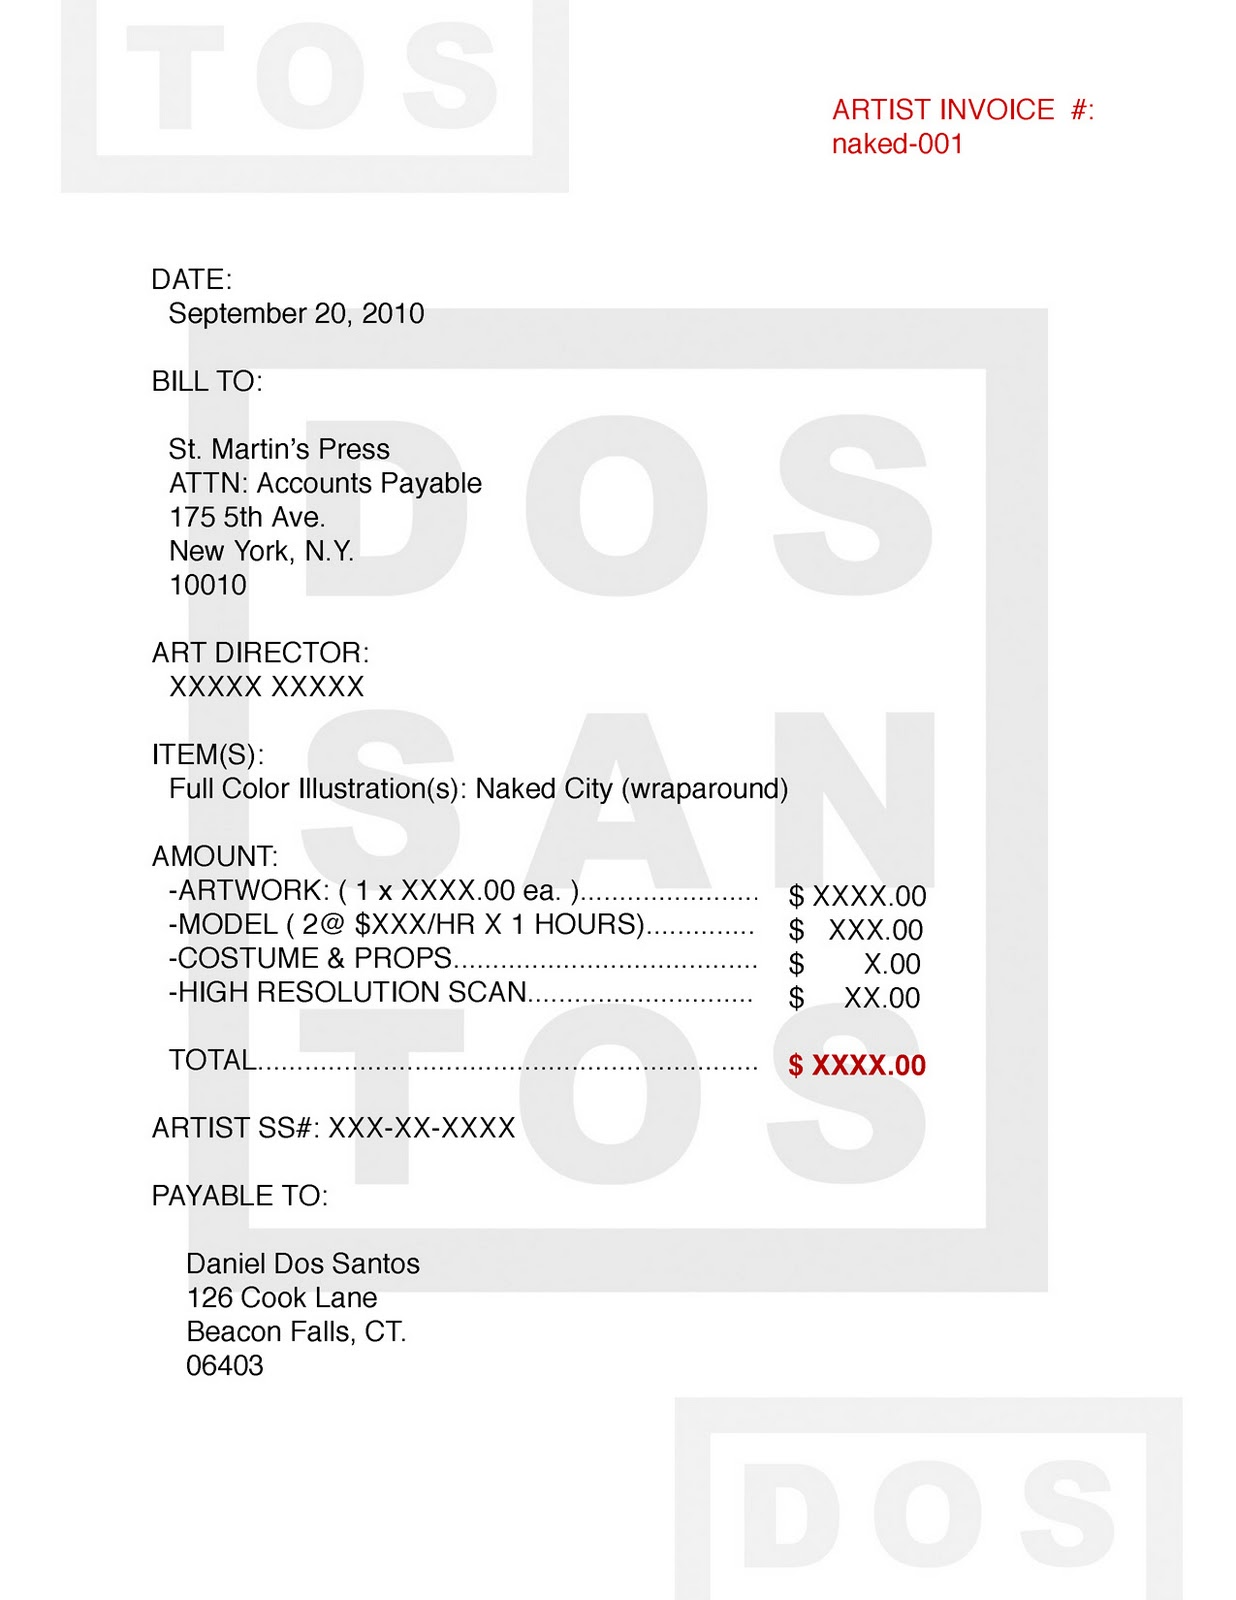 Howcanigettallerus  Inspiring Muddy Colors Invoices With Hot I Believe That This Format Contains All The Pertinent Information That A Good Invoice Should Have And Can Serve As A Decent Template For Your Own With Divine Edi Invoices Also Excel Invoice Template  In Addition Printable Invoice Free And Free Invoice Pdf As Well As New Invoice Additionally Quickbooks Online Invoicing From Muddycolorsblogspotcom With Howcanigettallerus  Hot Muddy Colors Invoices With Divine I Believe That This Format Contains All The Pertinent Information That A Good Invoice Should Have And Can Serve As A Decent Template For Your Own And Inspiring Edi Invoices Also Excel Invoice Template  In Addition Printable Invoice Free From Muddycolorsblogspotcom